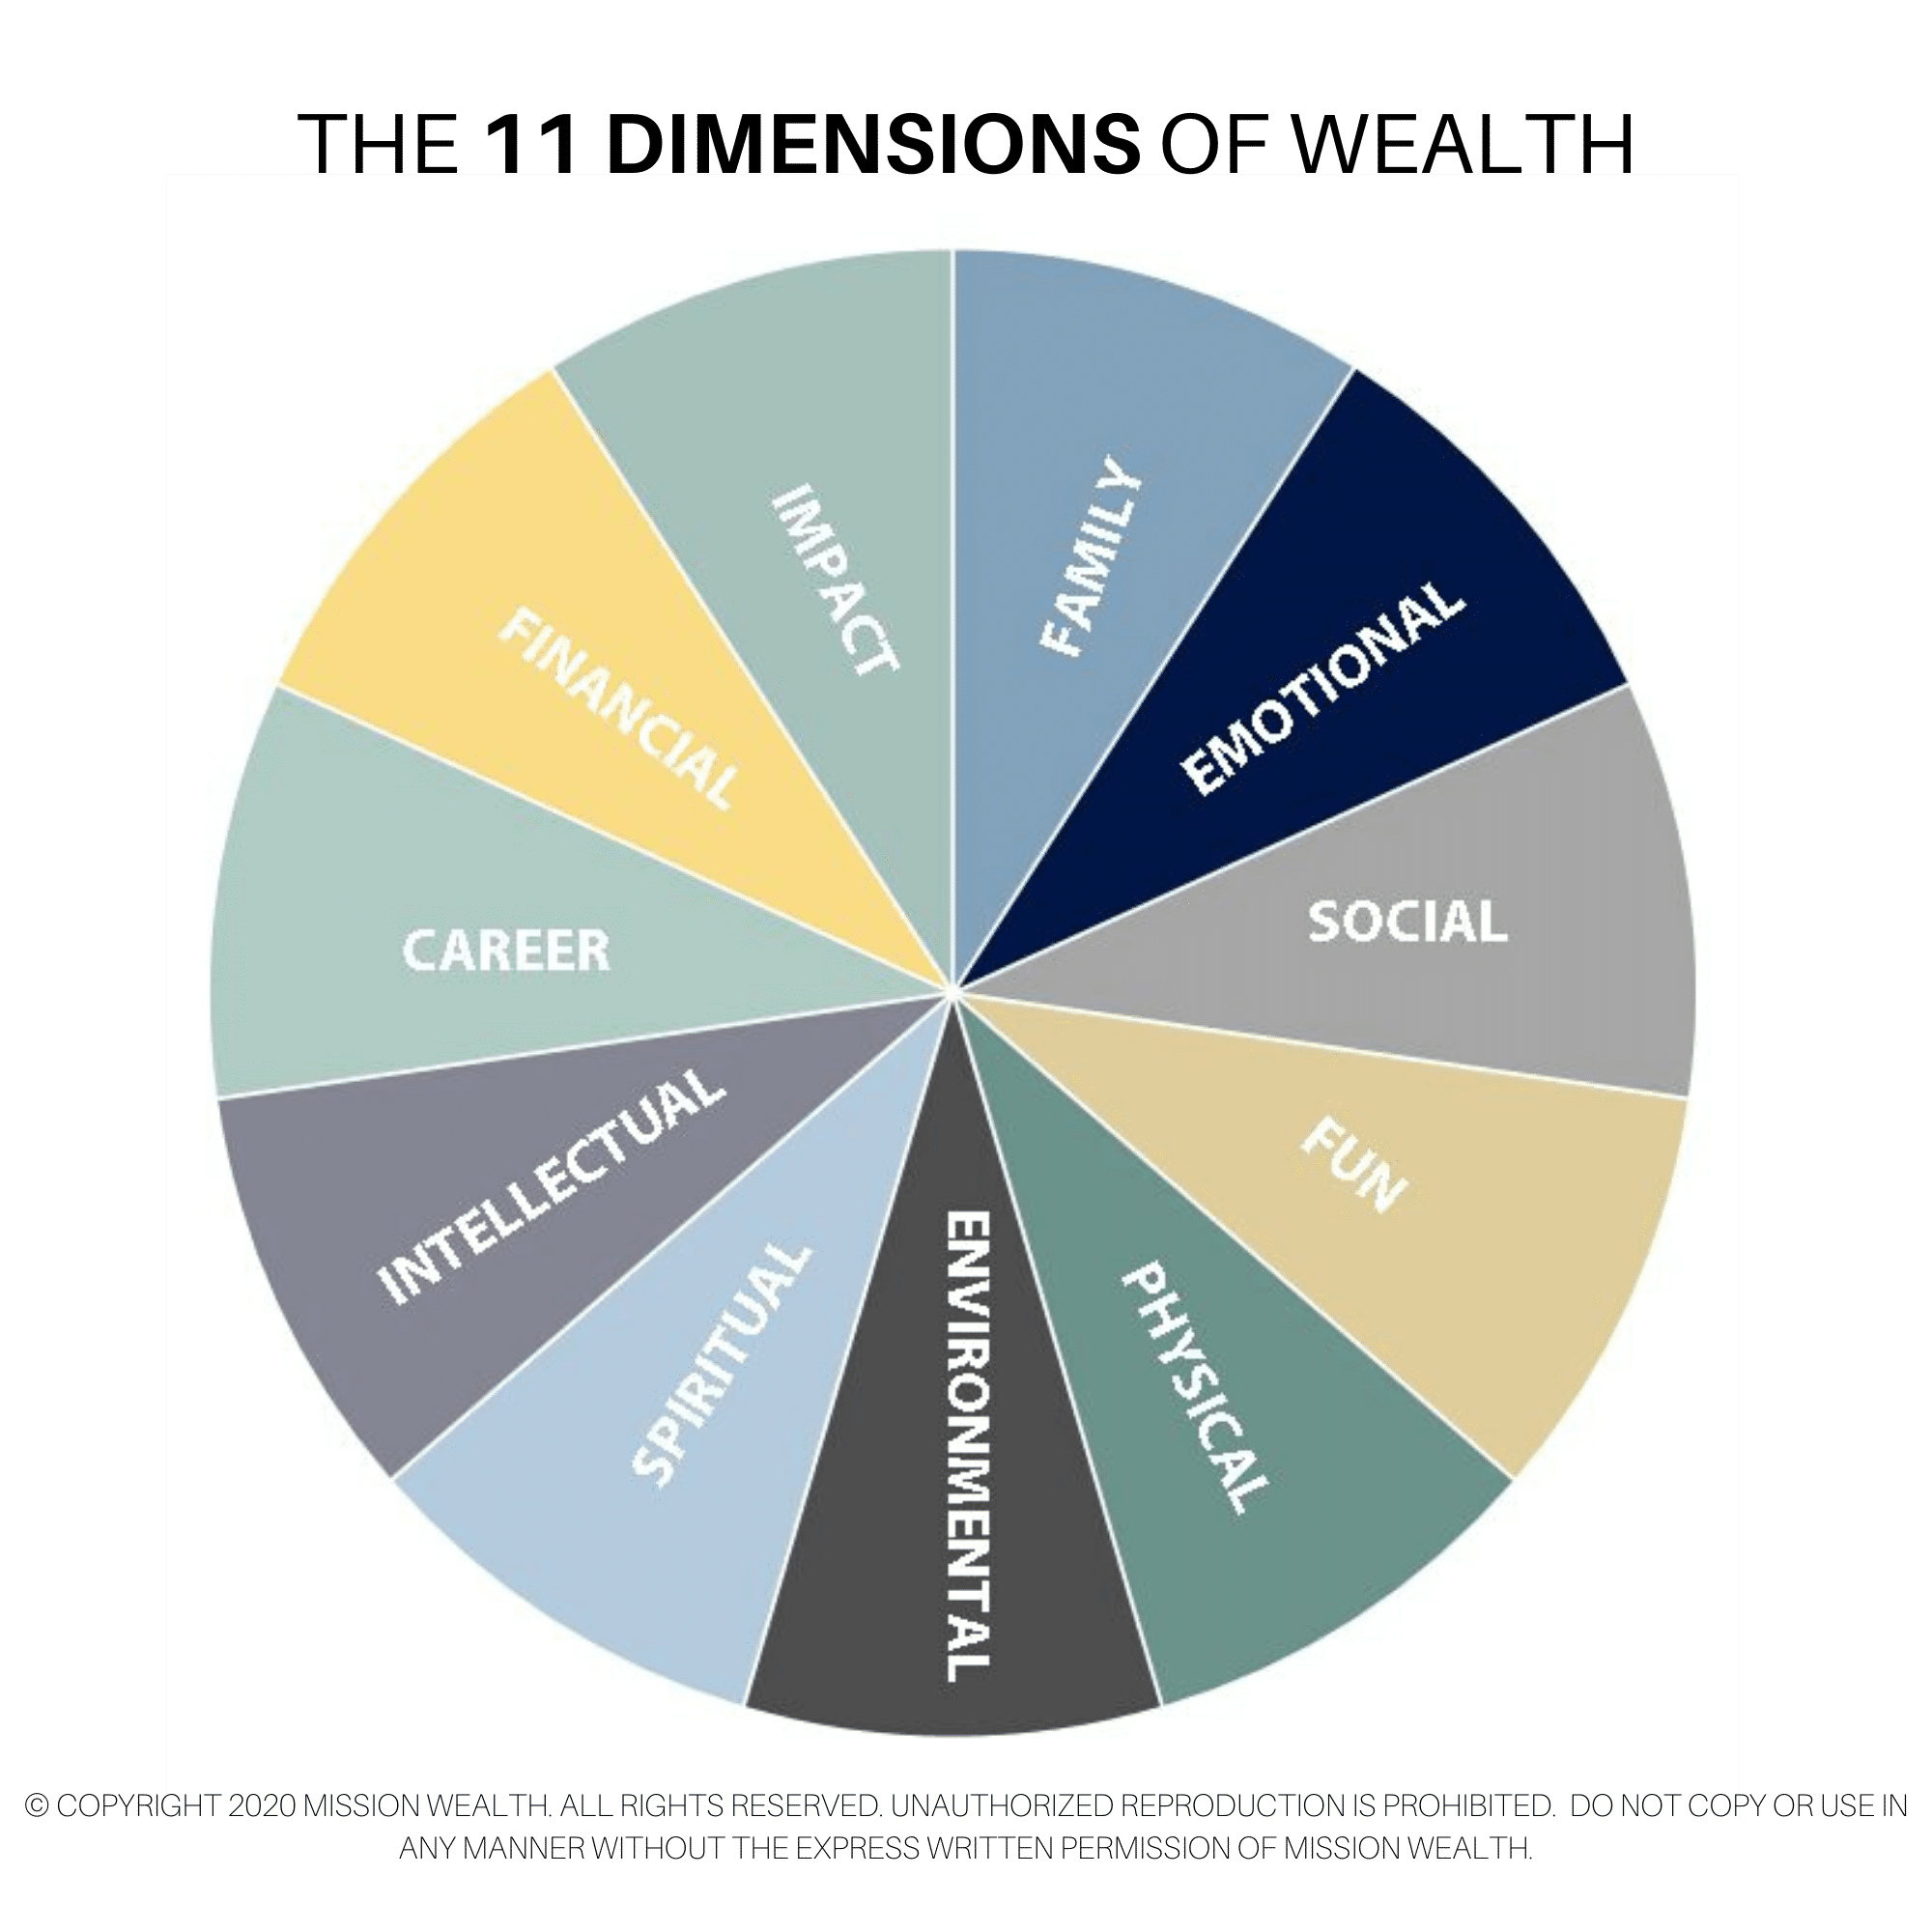 The 11 Dimensions of Wealth 2020 Mission Wealth